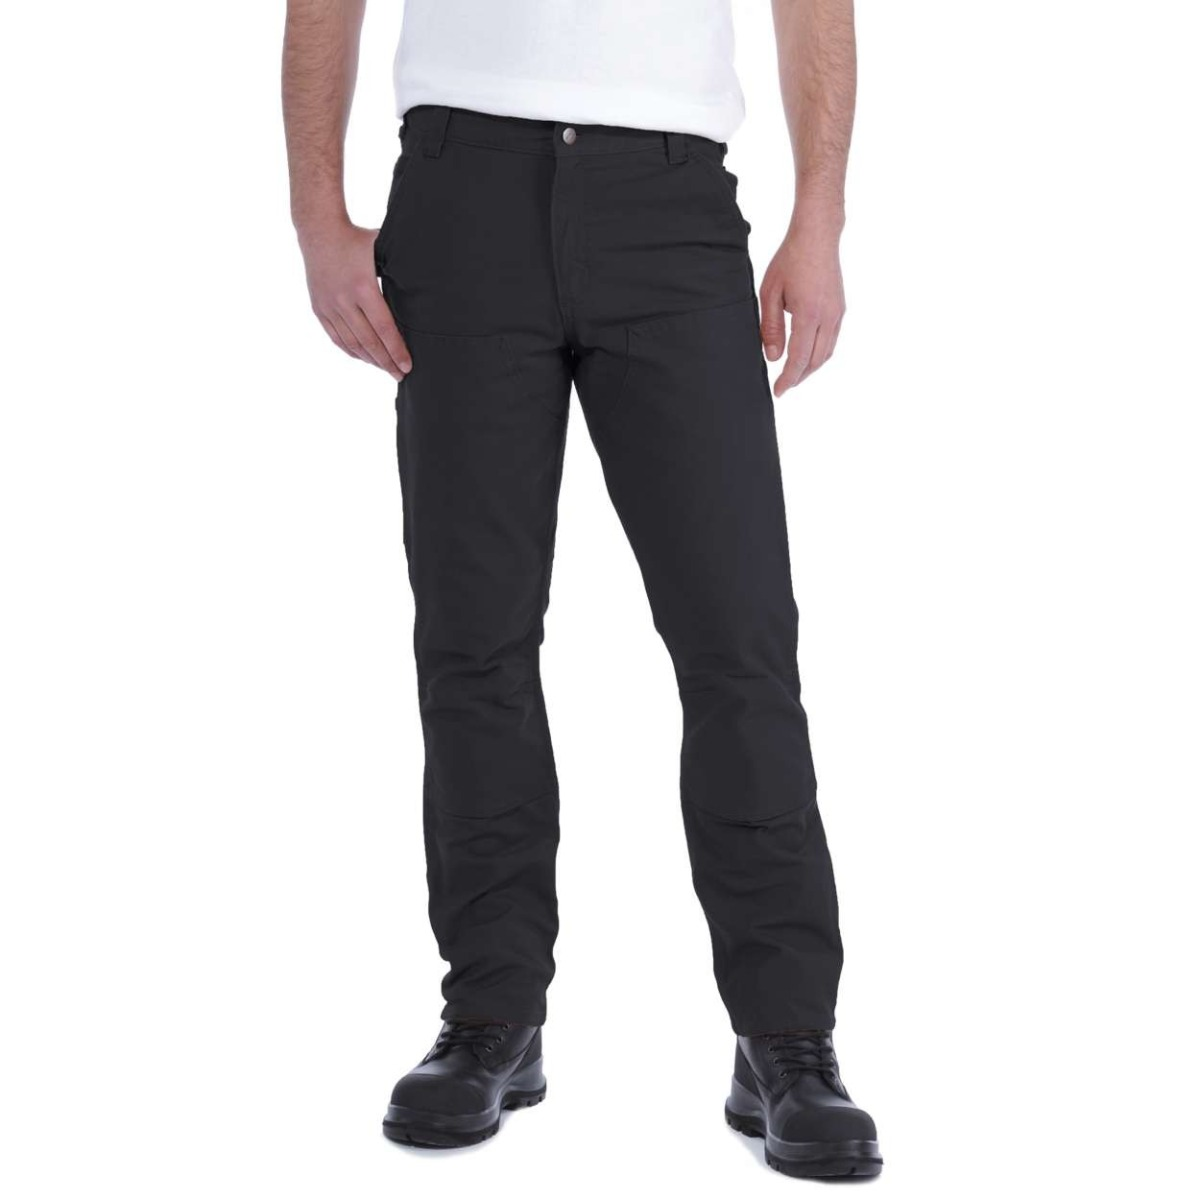 Carhartt Stretch Duck Double Front Trousers, Black, W36/L34